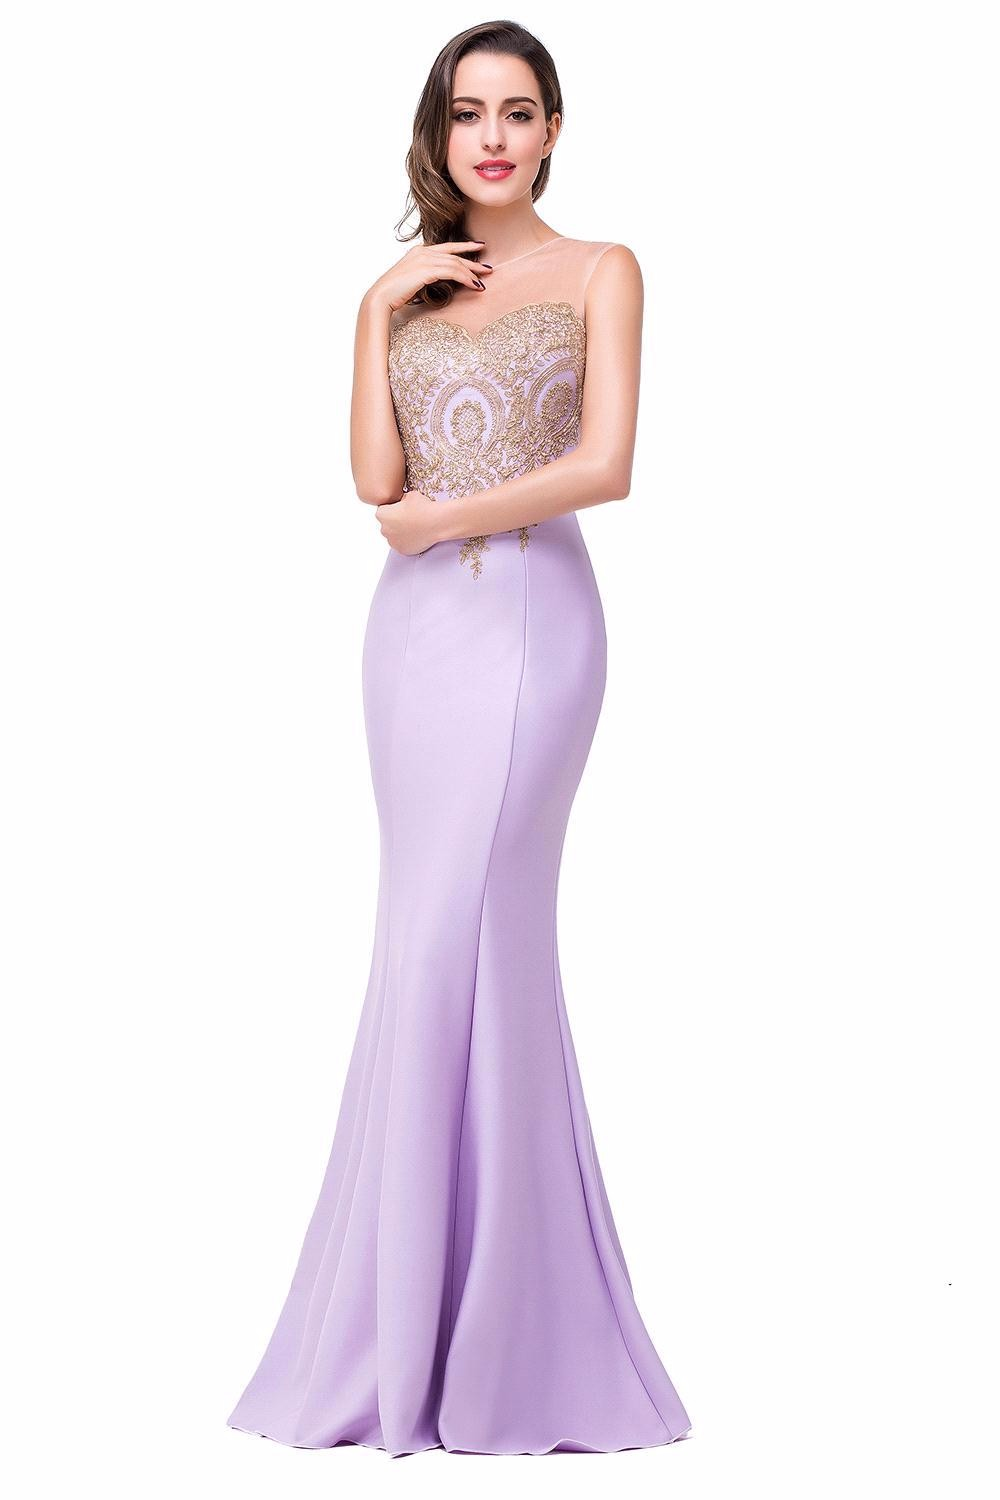 Popular appliques lavender bridesmaid dress buy cheap appliques free shipping elegant gold appliques long mermaid lavender bridesmaid dresses burgundy black rose red wedding party ombrellifo Gallery